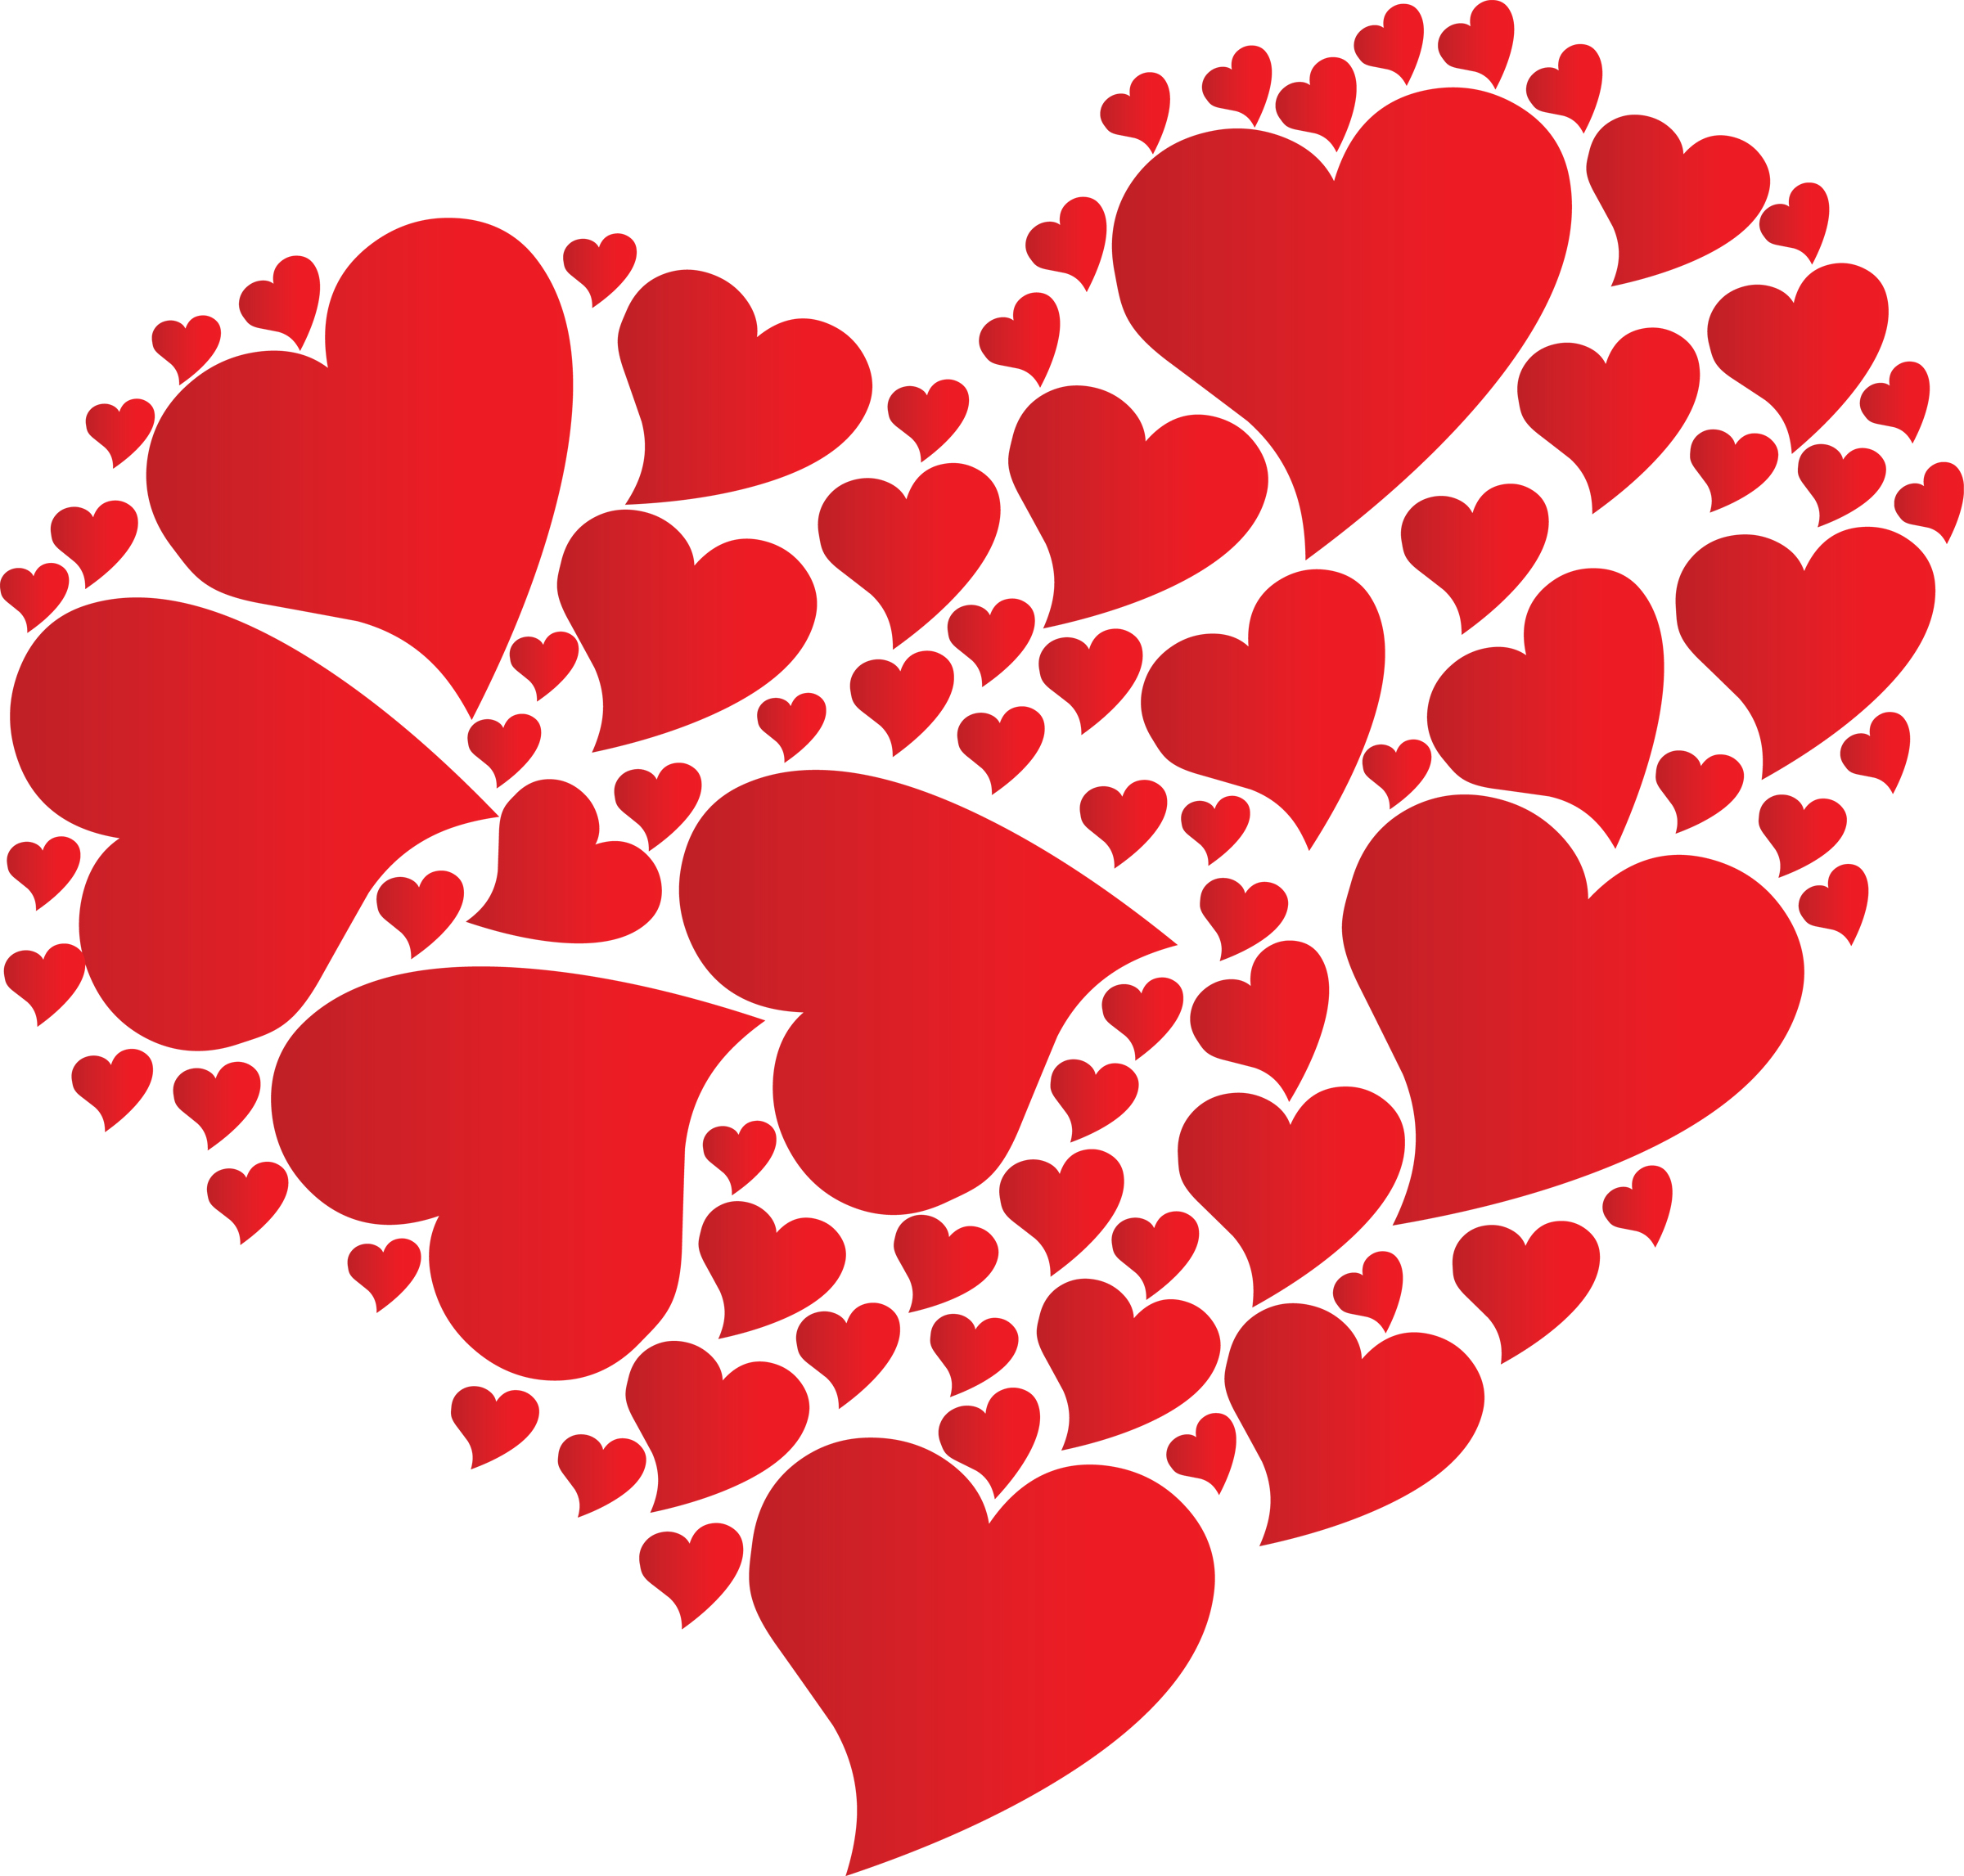 Grades clipart heart. Centre out of school